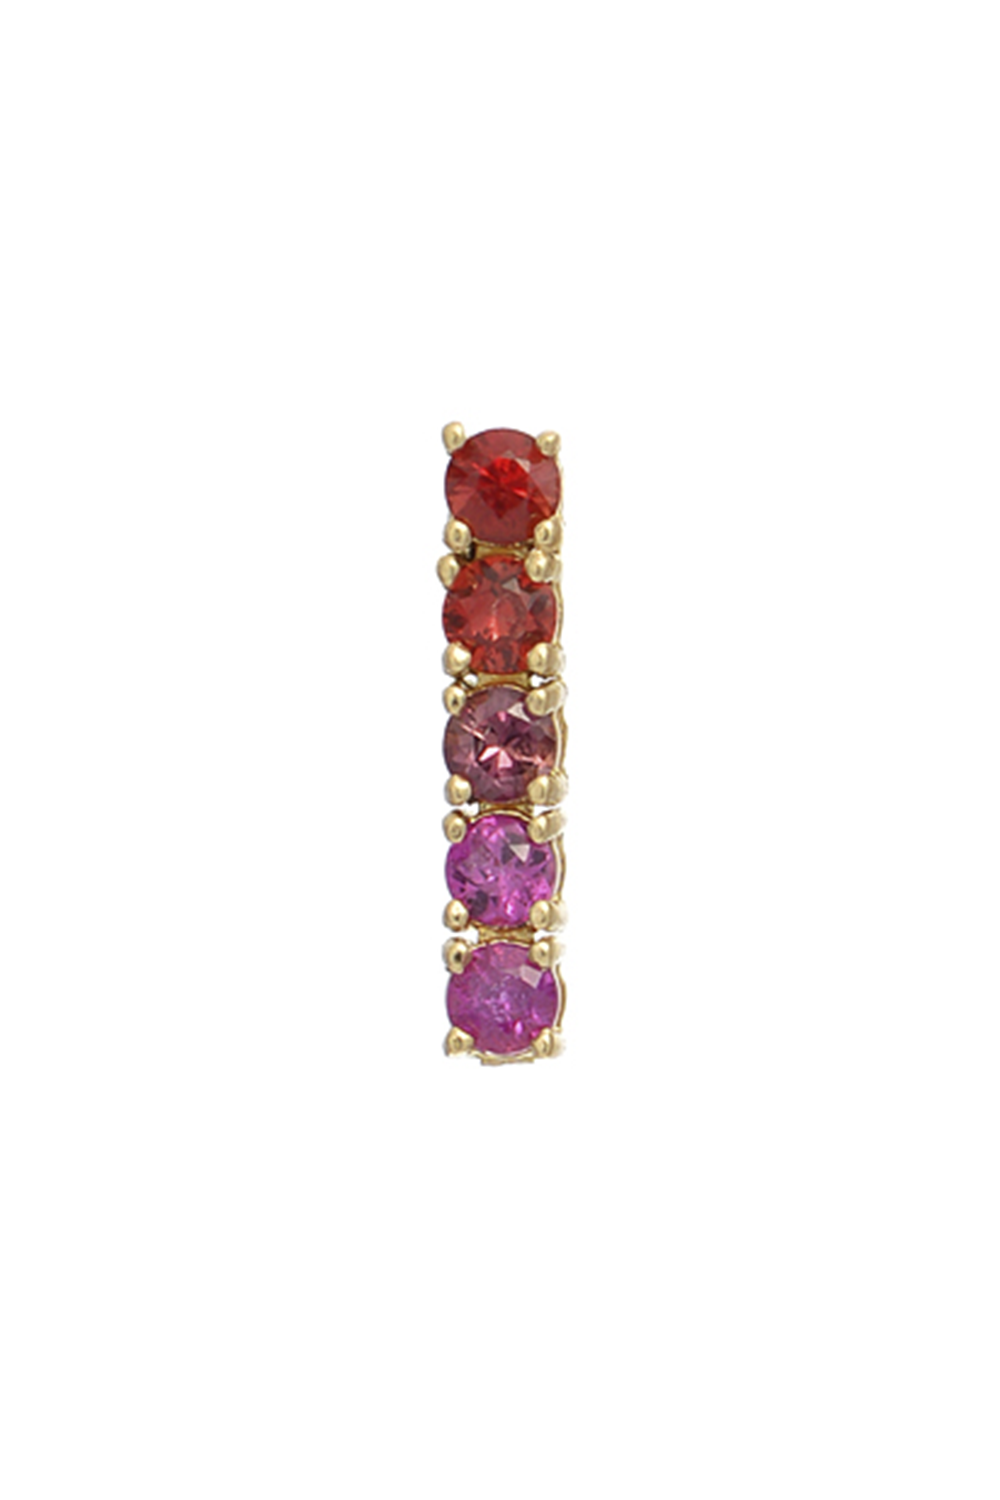 5 Sapphires Ping Pong Drop Earring in Red & Pink